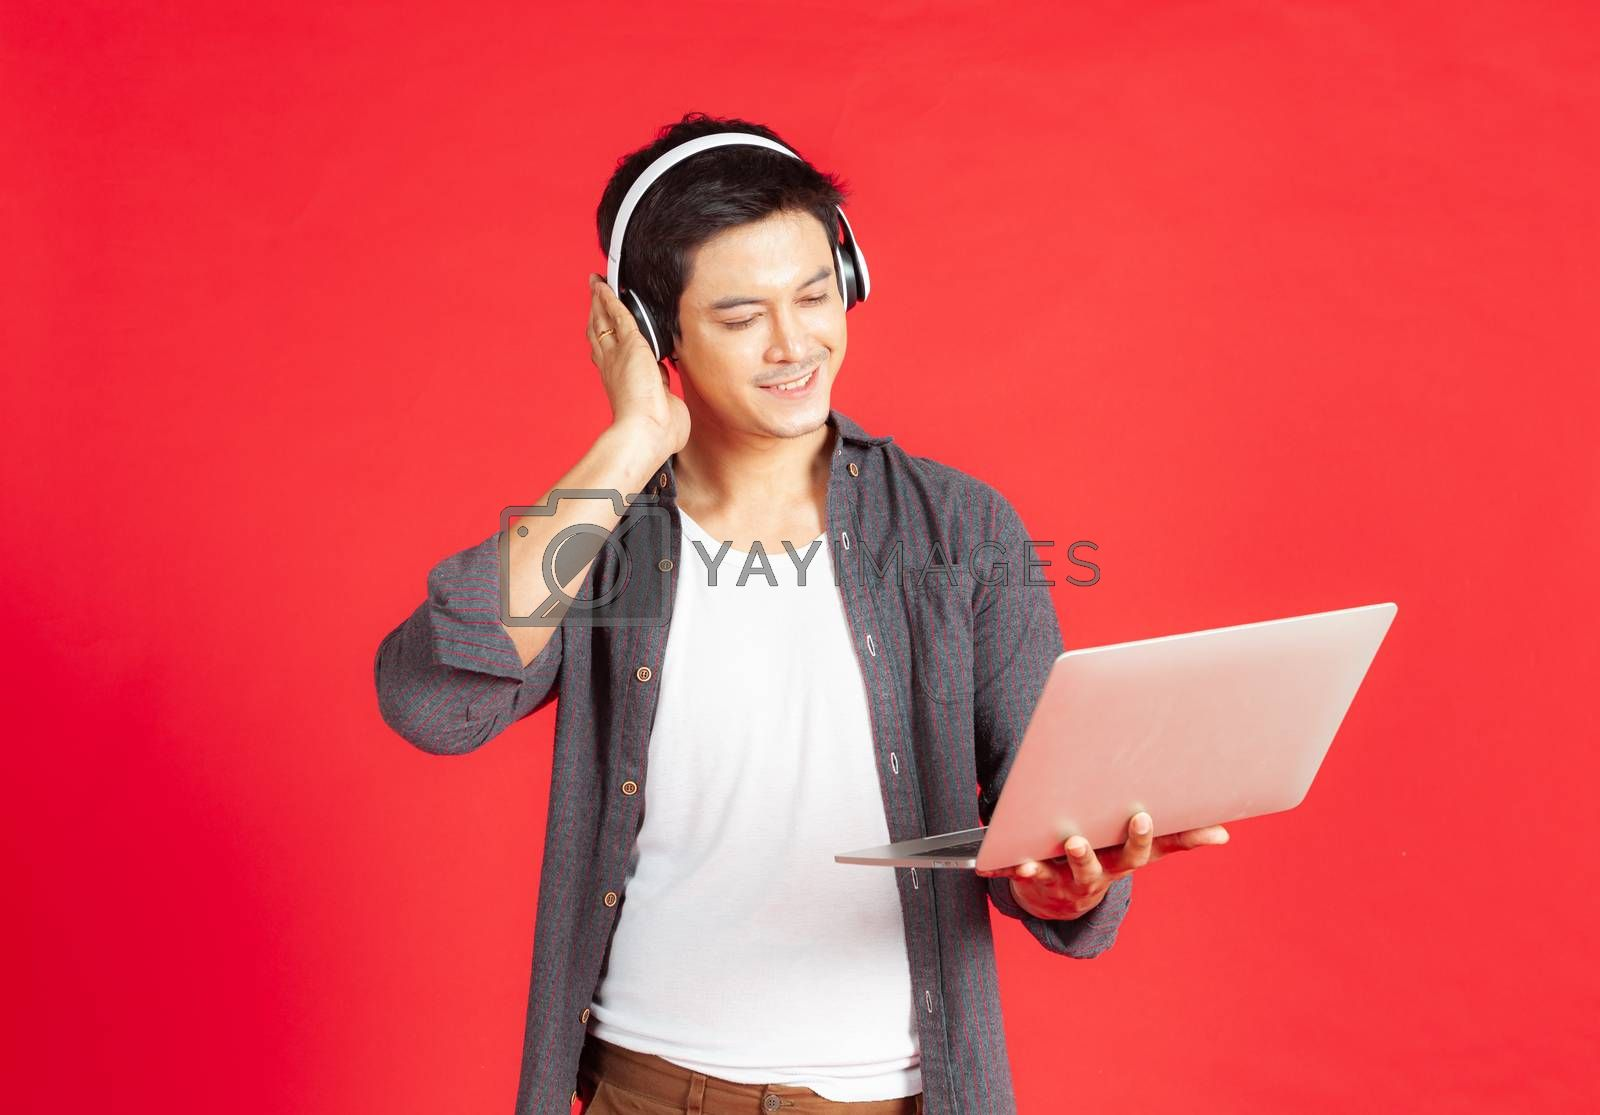 The smart young man is enjoying the music he created from a notebook computer via Bluetooth headphones.